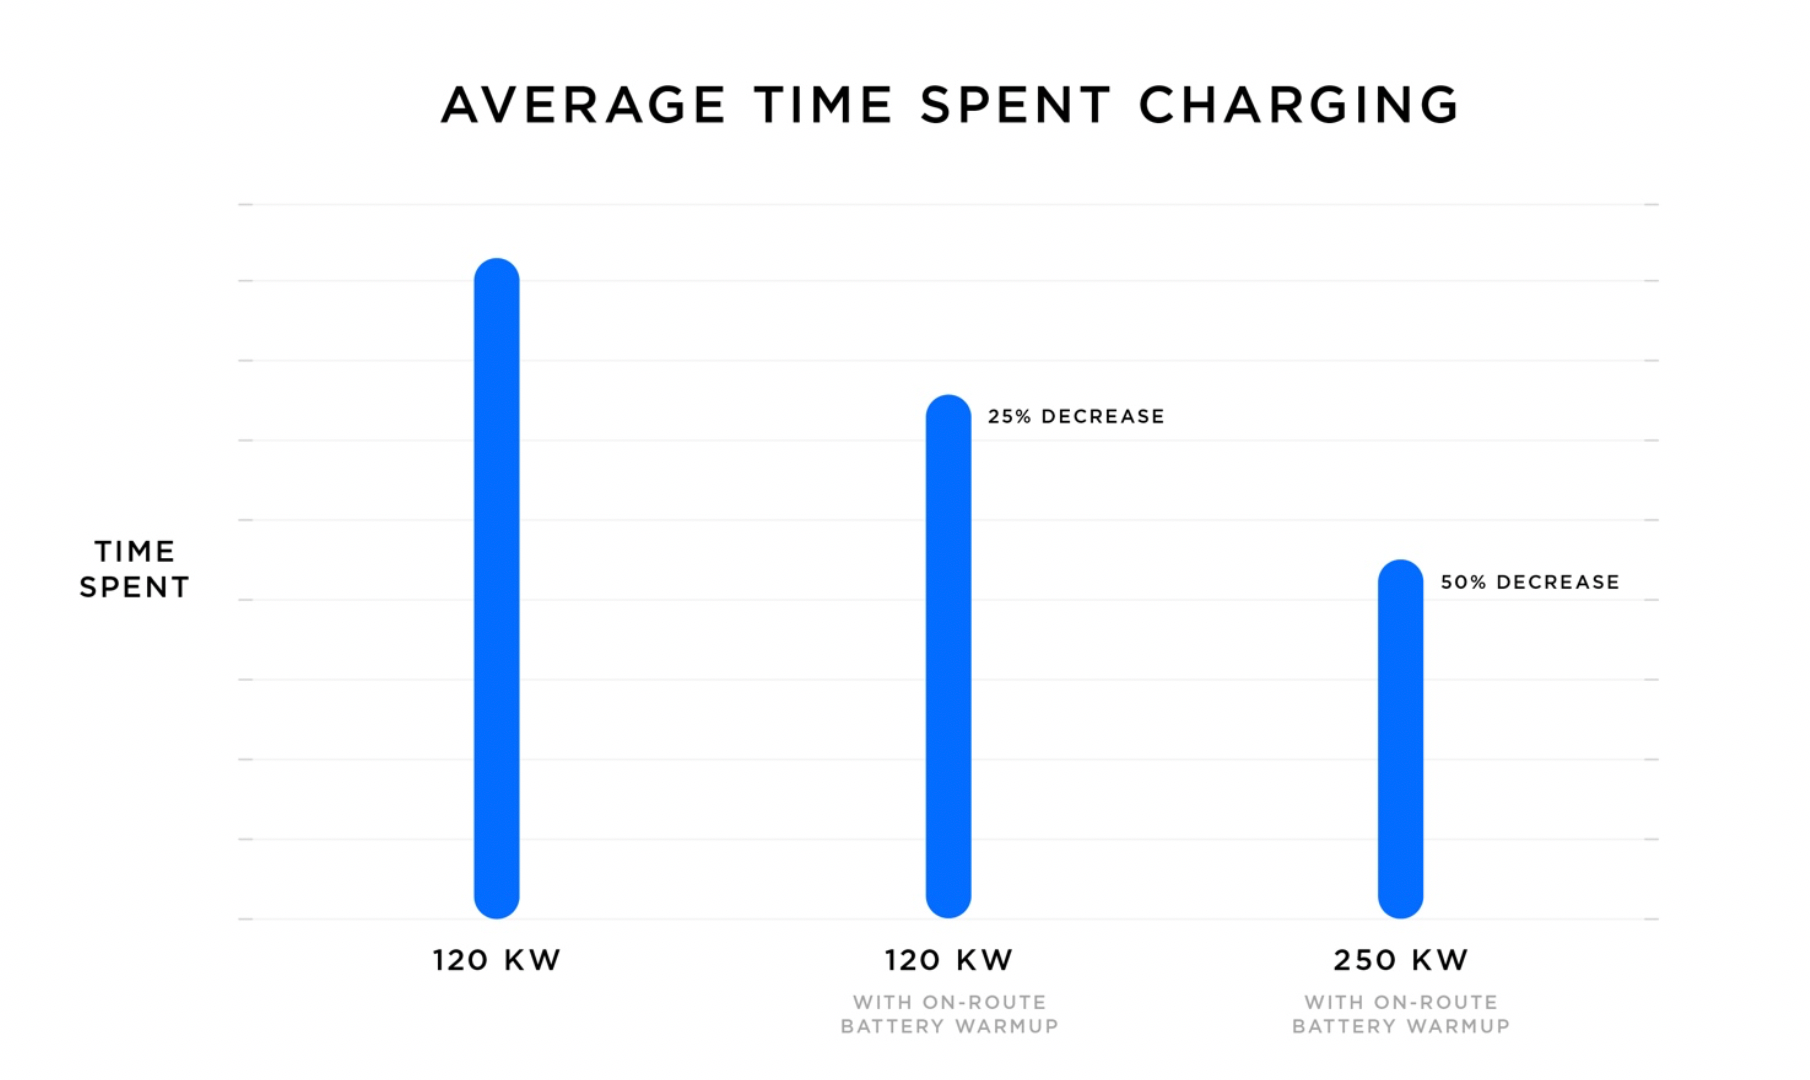 Average time spent charging with on-route warm-up for V2 and V3 Supercharging